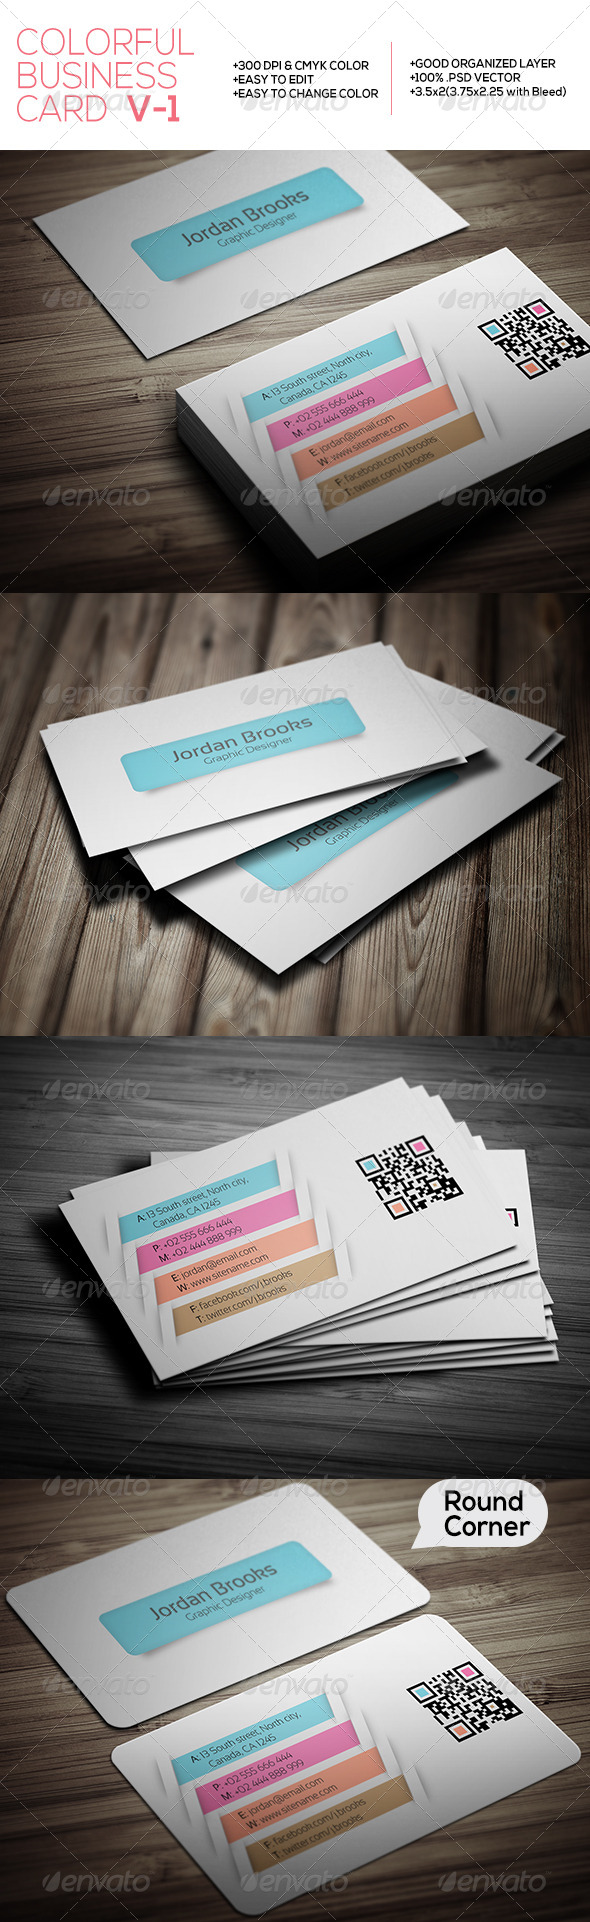 GraphicRiver Colorful Business Card V-1 7383362